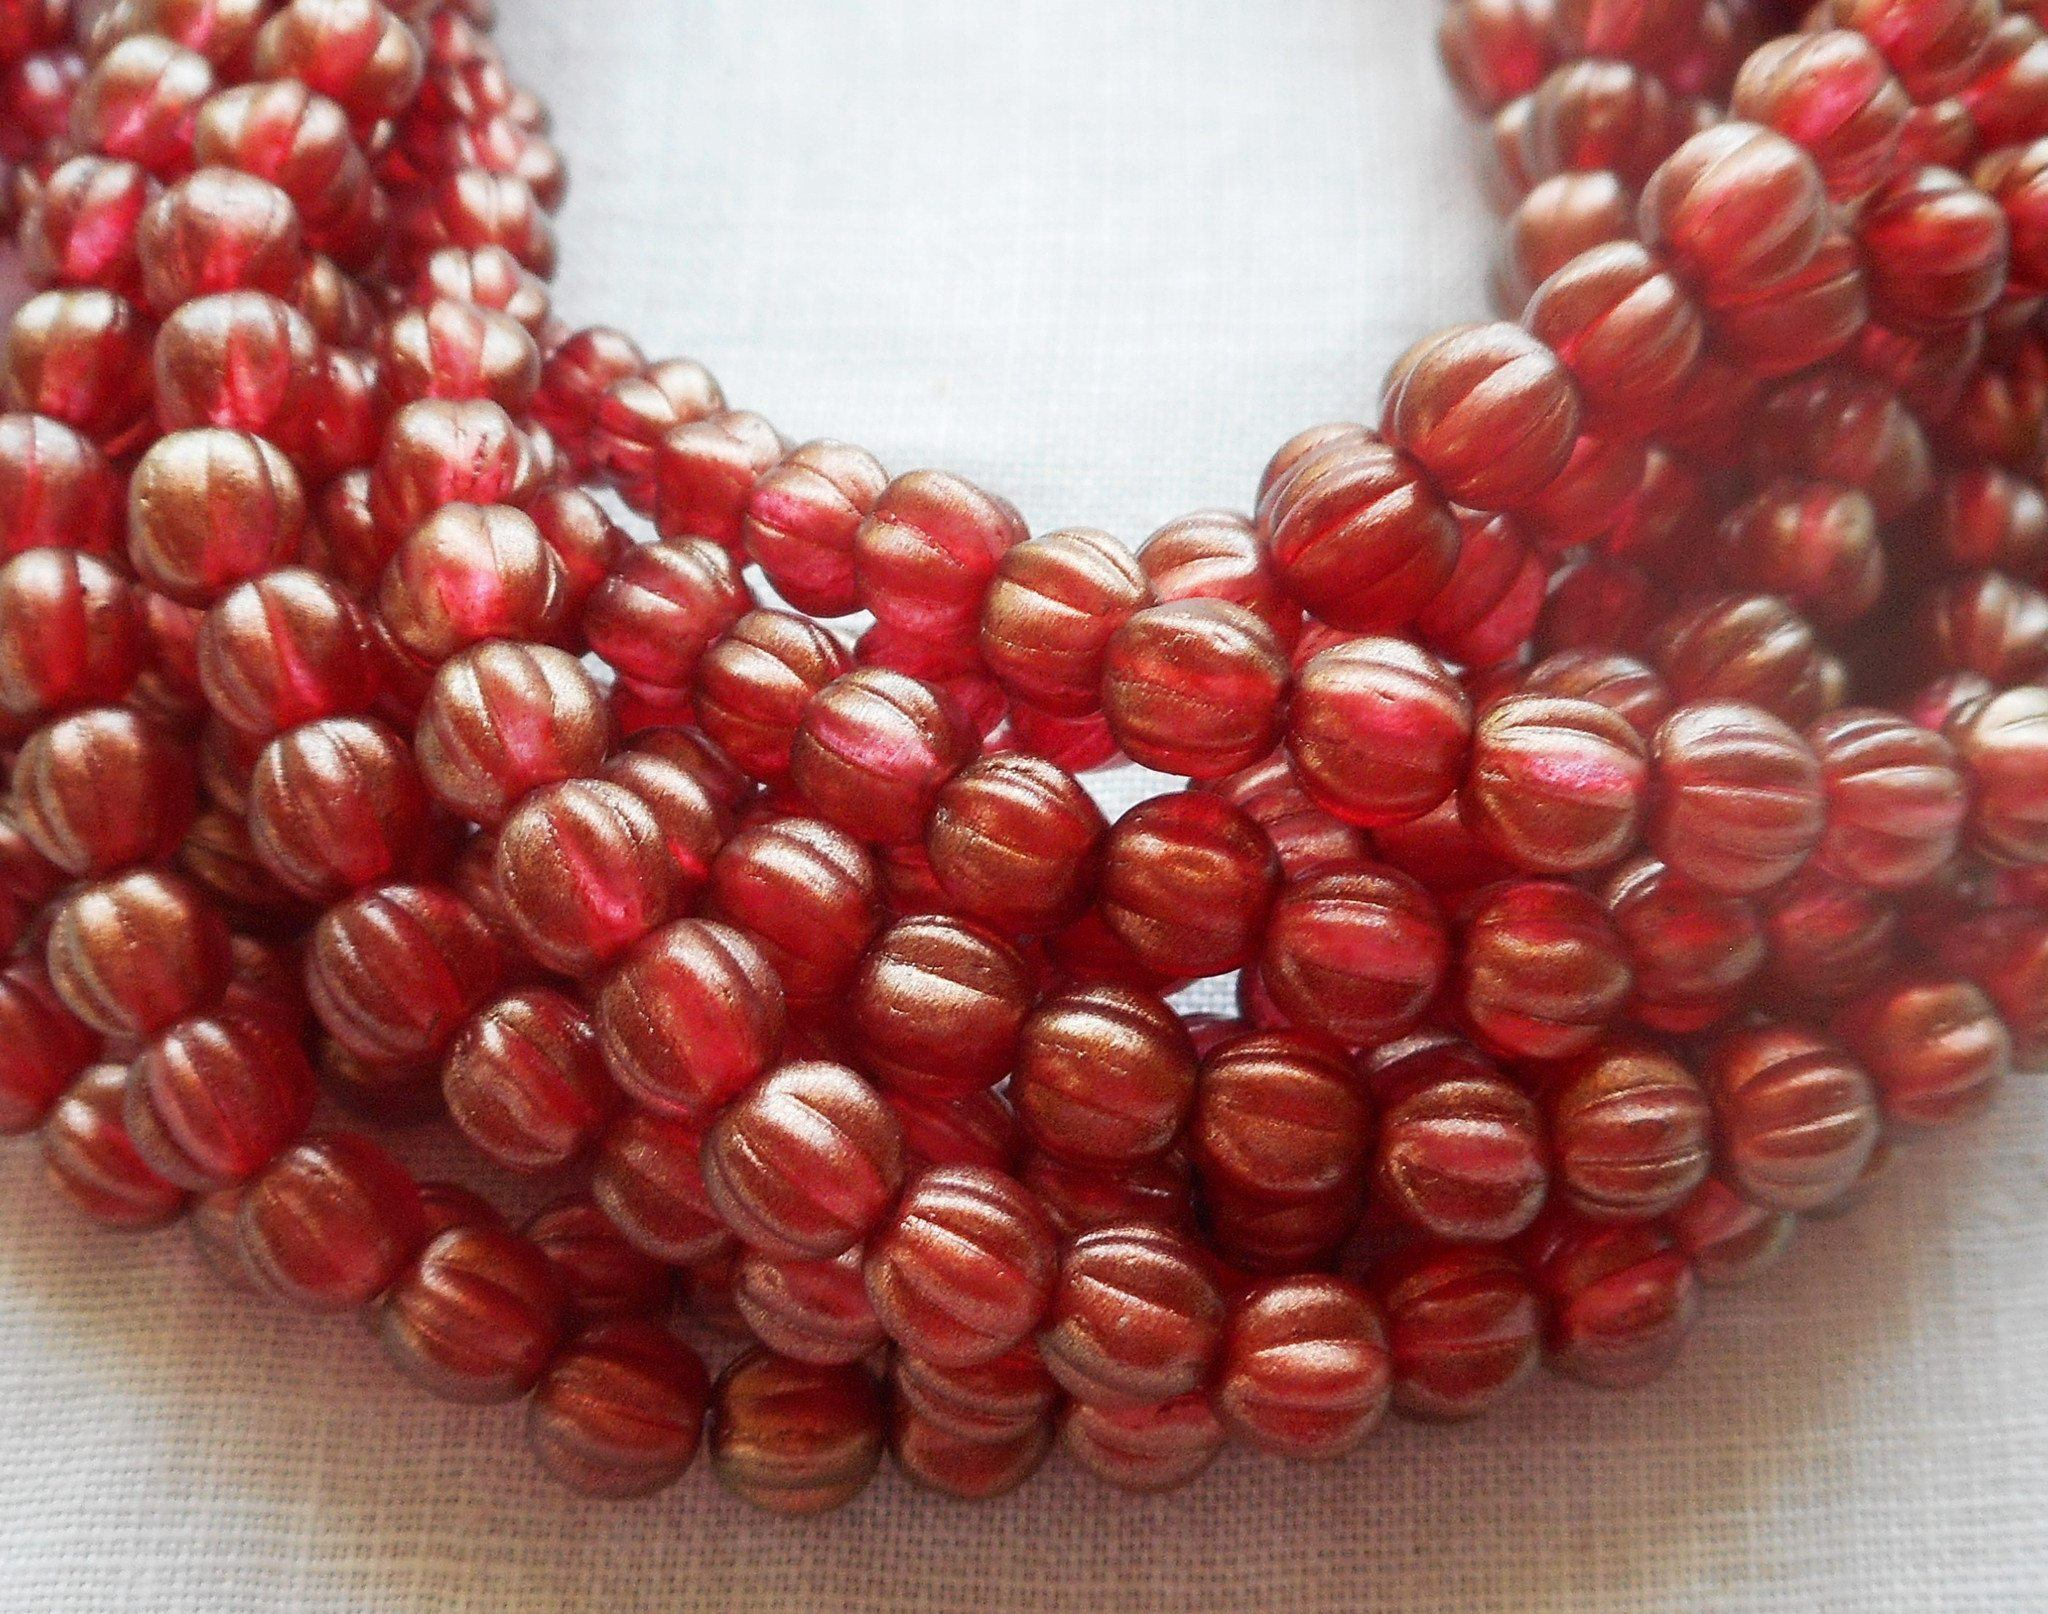 medium studded china chain set head size necklace ear stone bead crafts gold red large pearls hobby and eye hook faceted craft rings beads rose hooks pins img